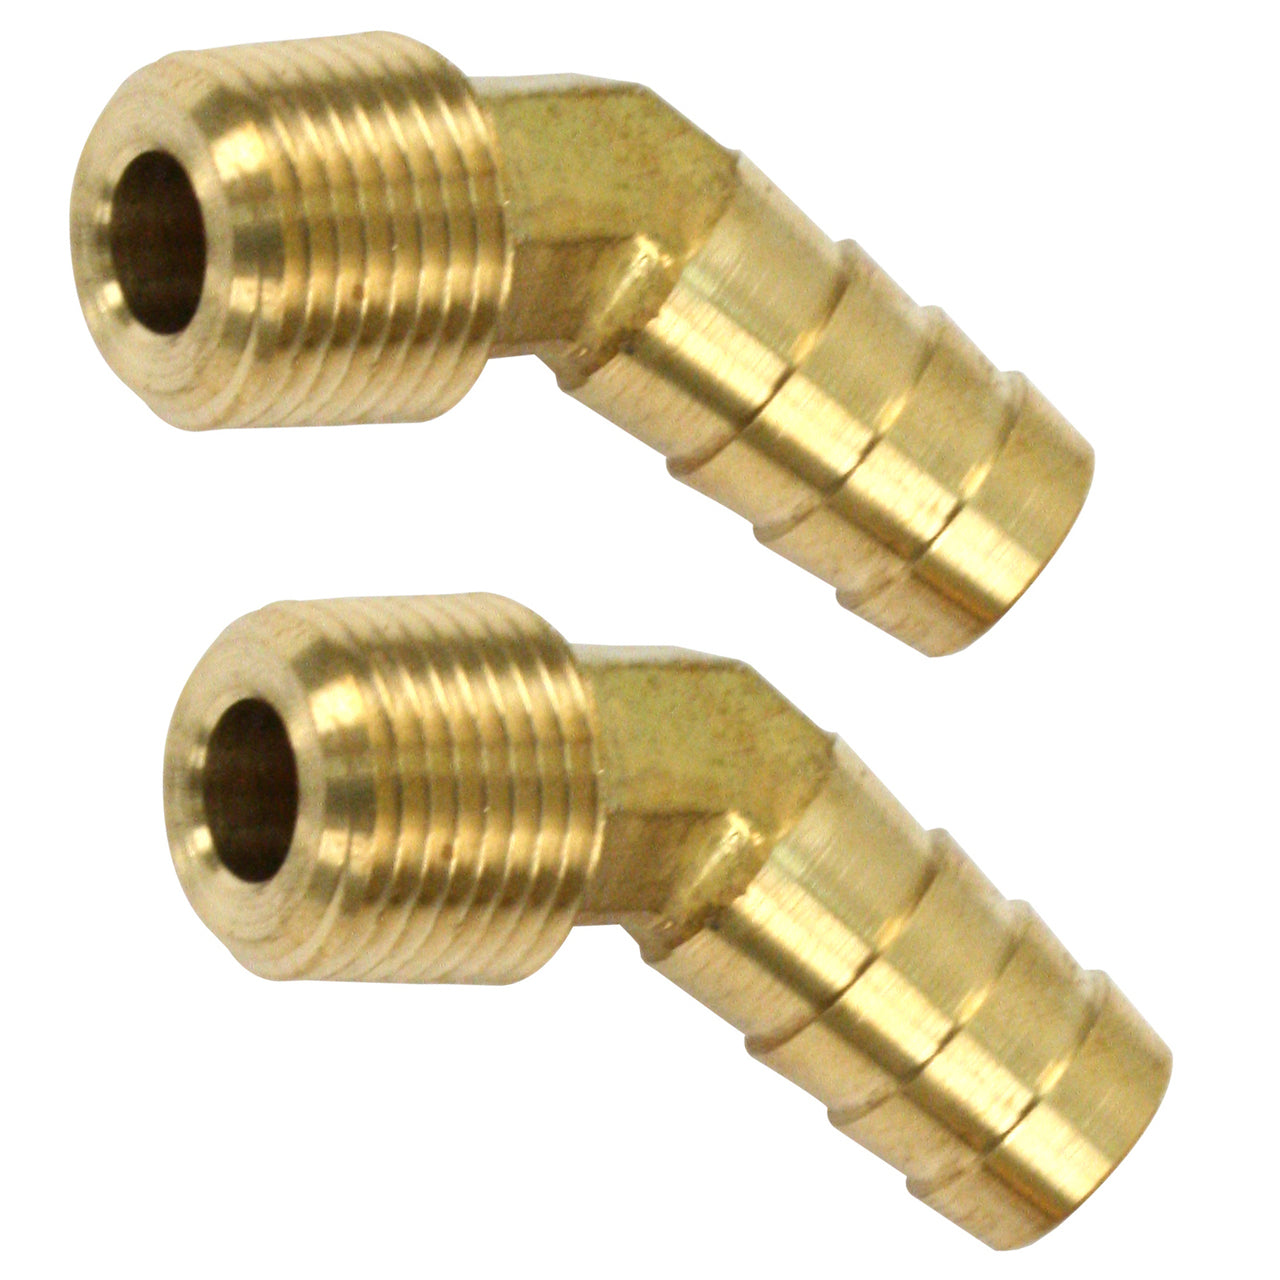 "BRASS FITTINGS 30 DEGREE, MALE 3/8"" NPT X 1/2"" BARBED, PAIR"